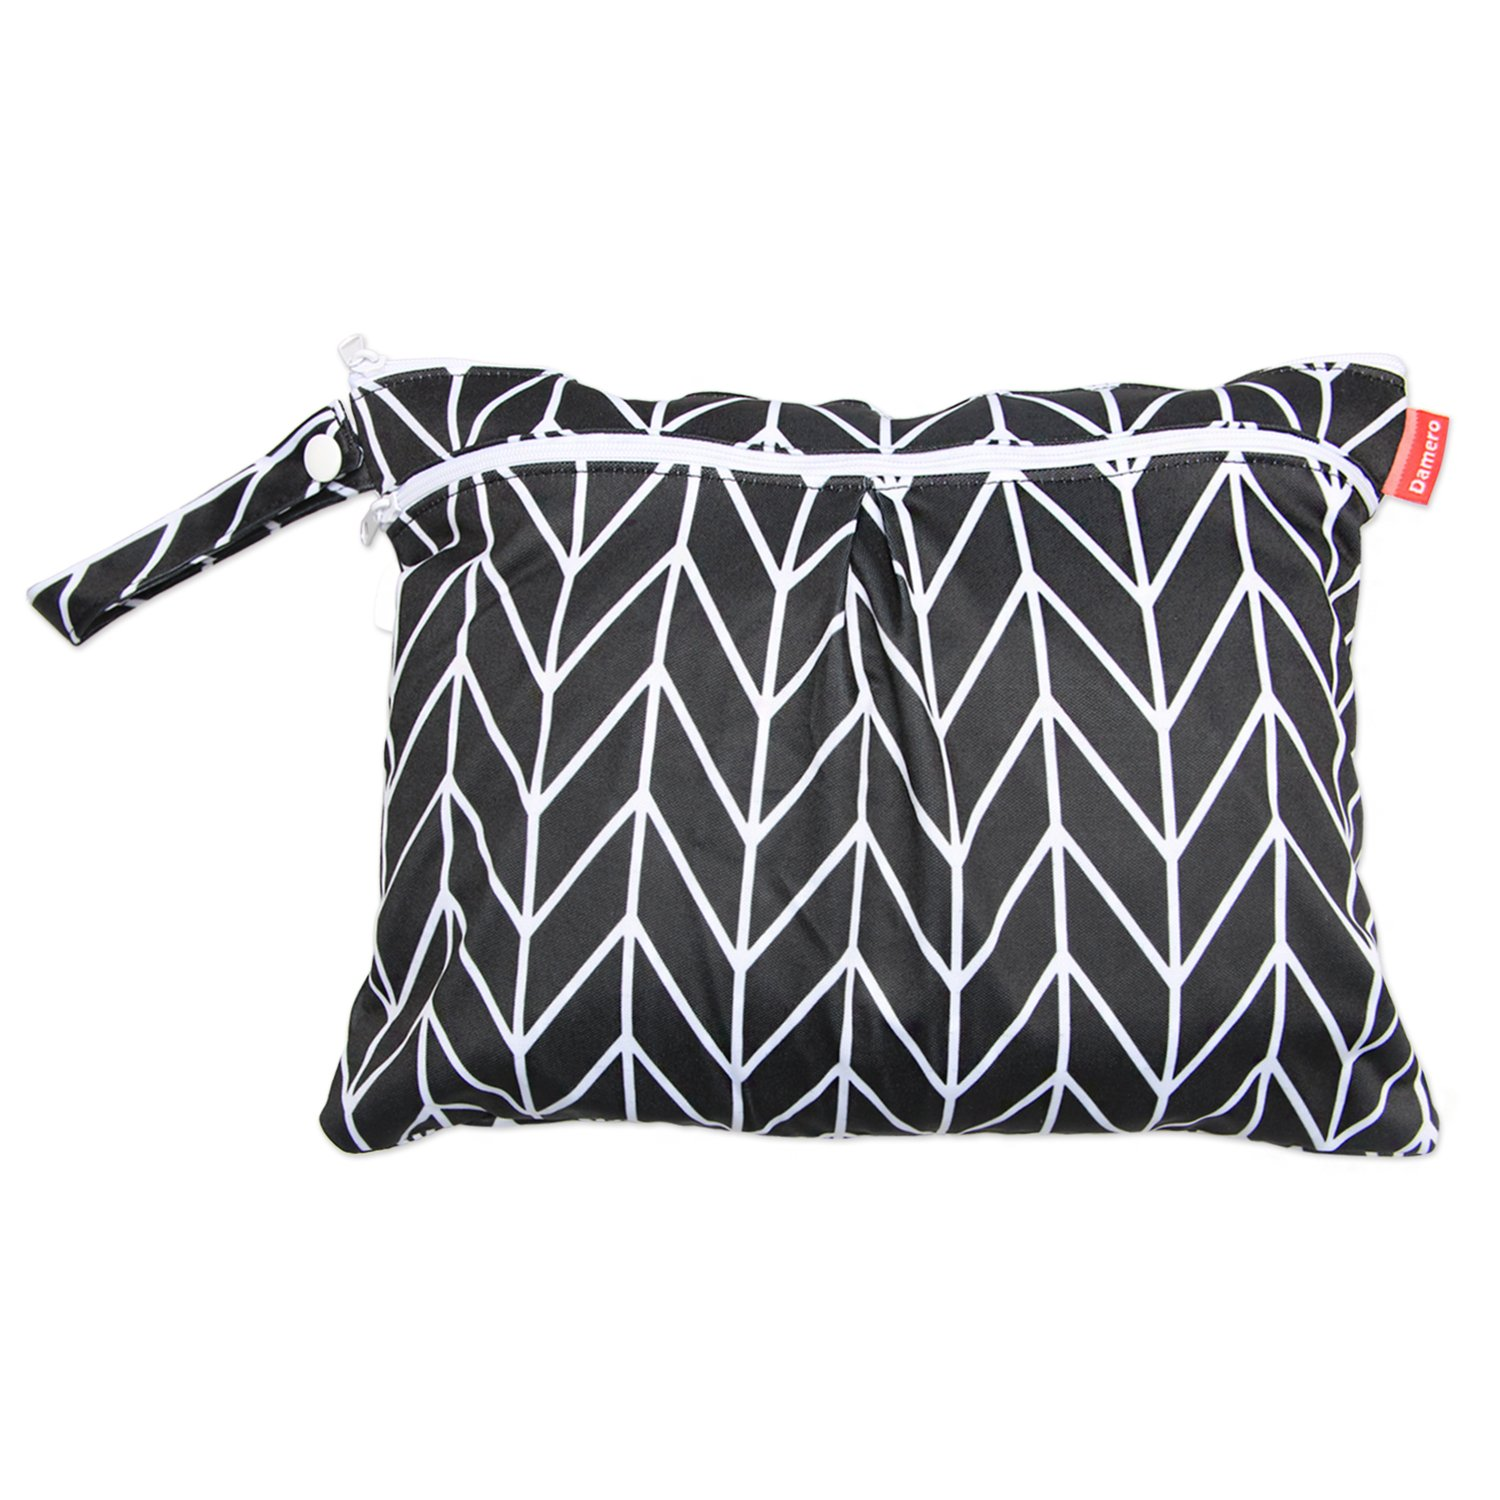 Damero Travel Wet and Dry Bag with Handle for Cloth Diaper, Pumping Parts, Clothes, Swimsuit and More, Easy to Grab and Go (Small, Black Arrows)